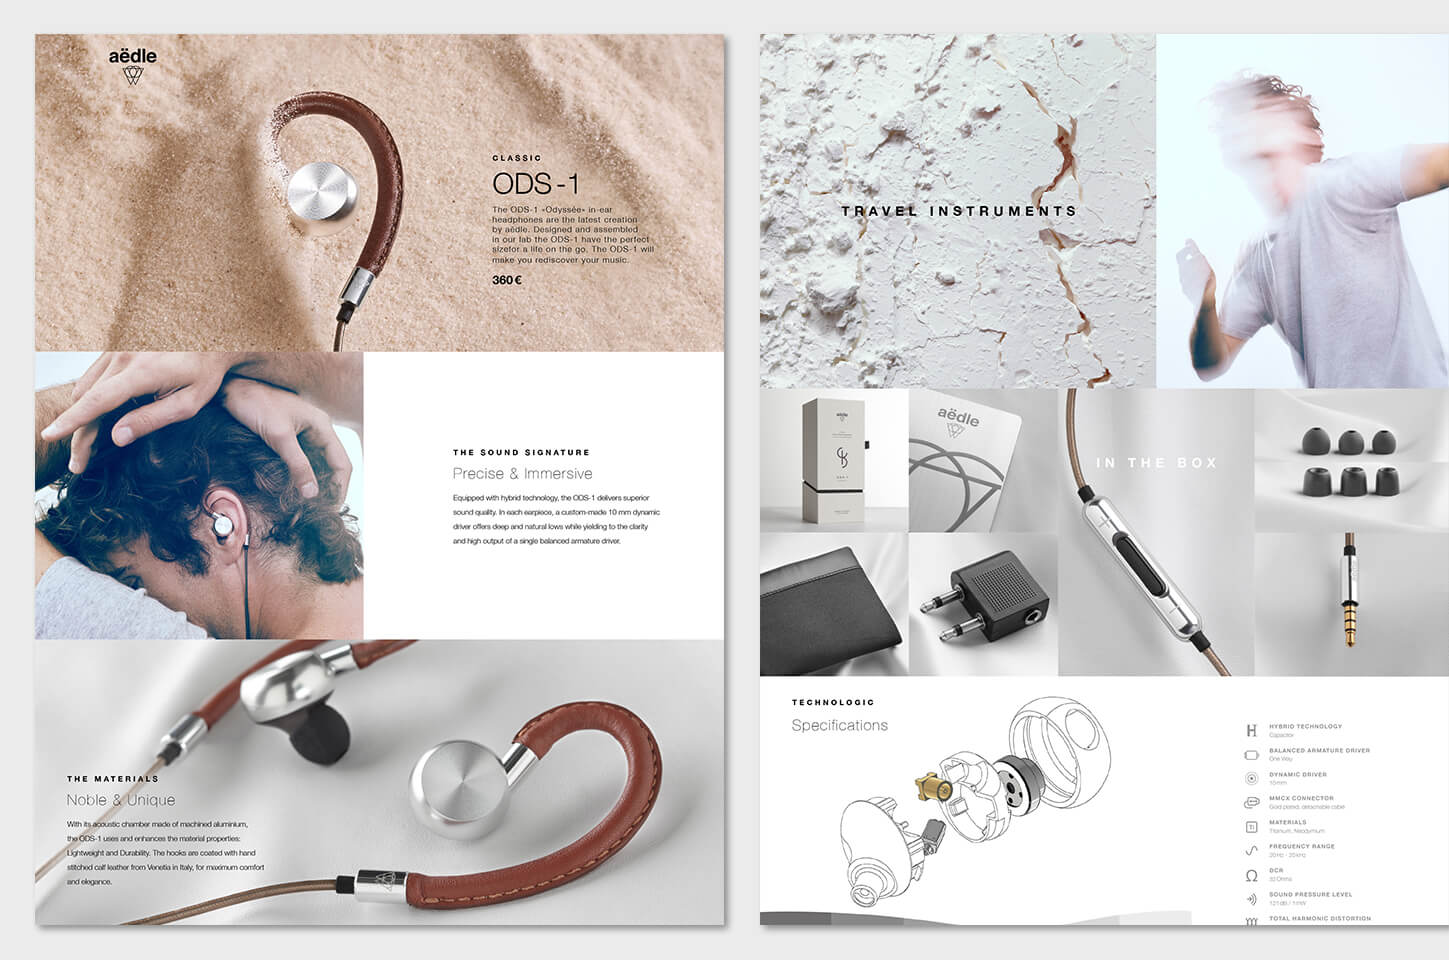 aedle-ods1_branding_09